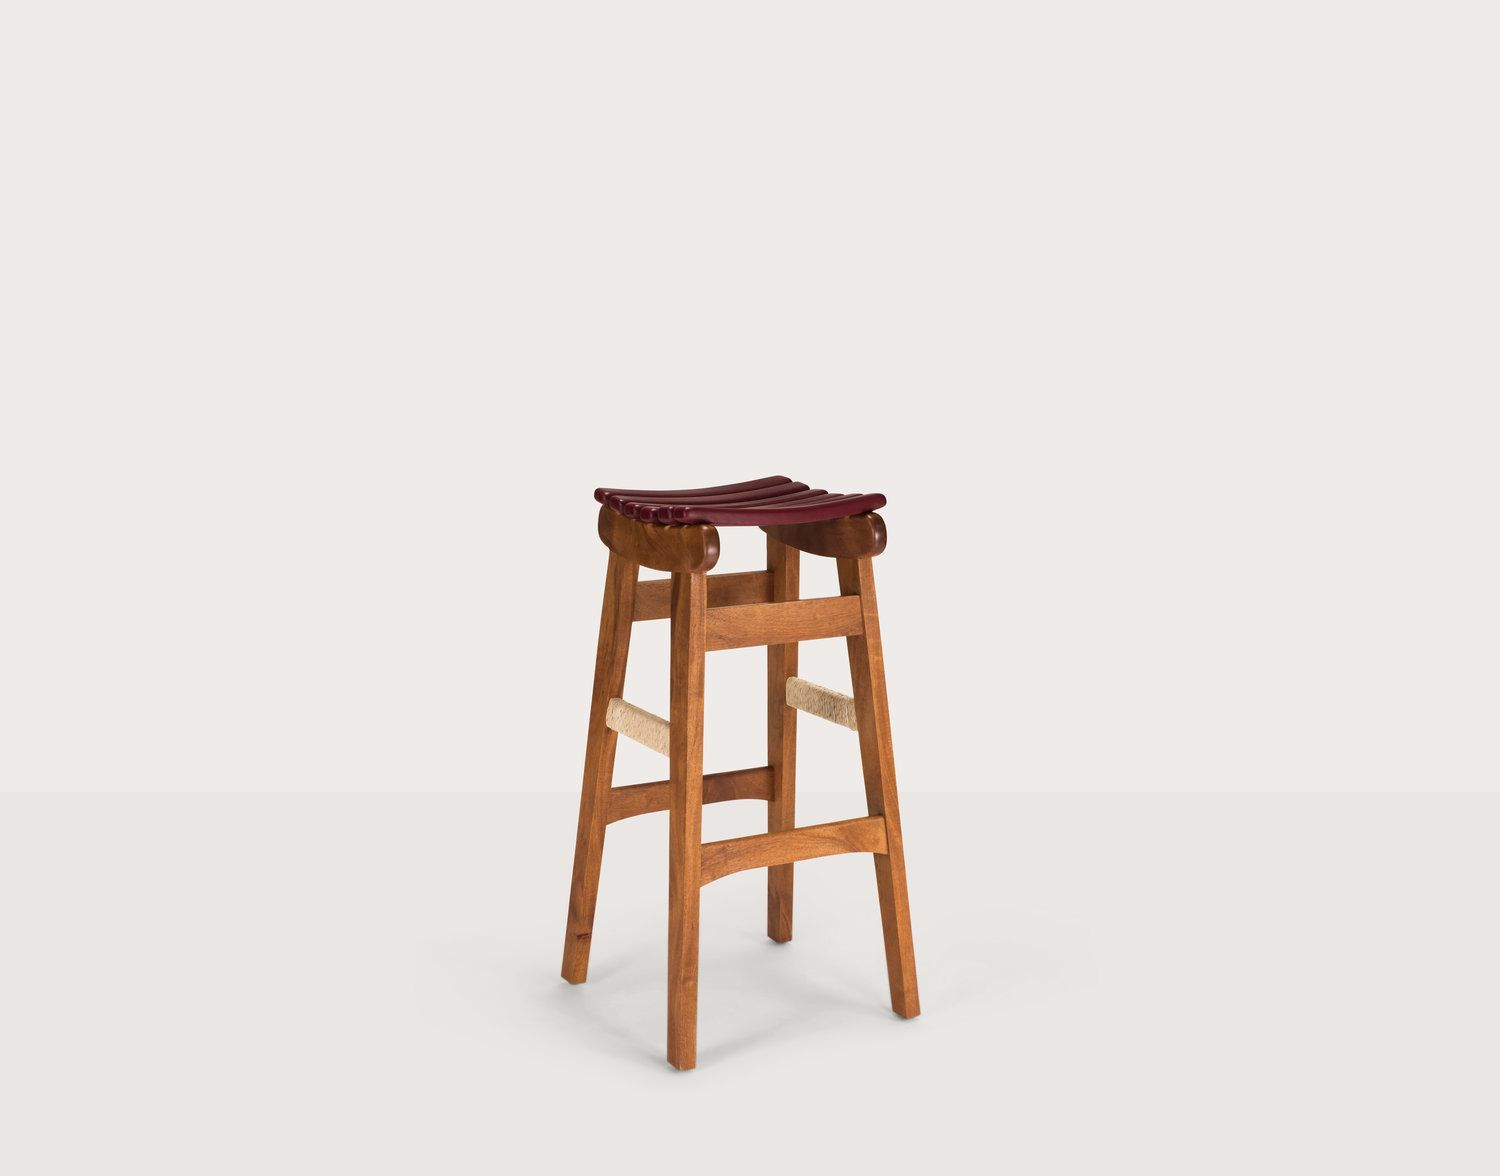 Contemporary · San Miguelito Bar Stool By Michael Van Beuren For Luteca  #michaelvanbeuren #newcollection2017 #architecture · Mexican FurnitureMexico  ...